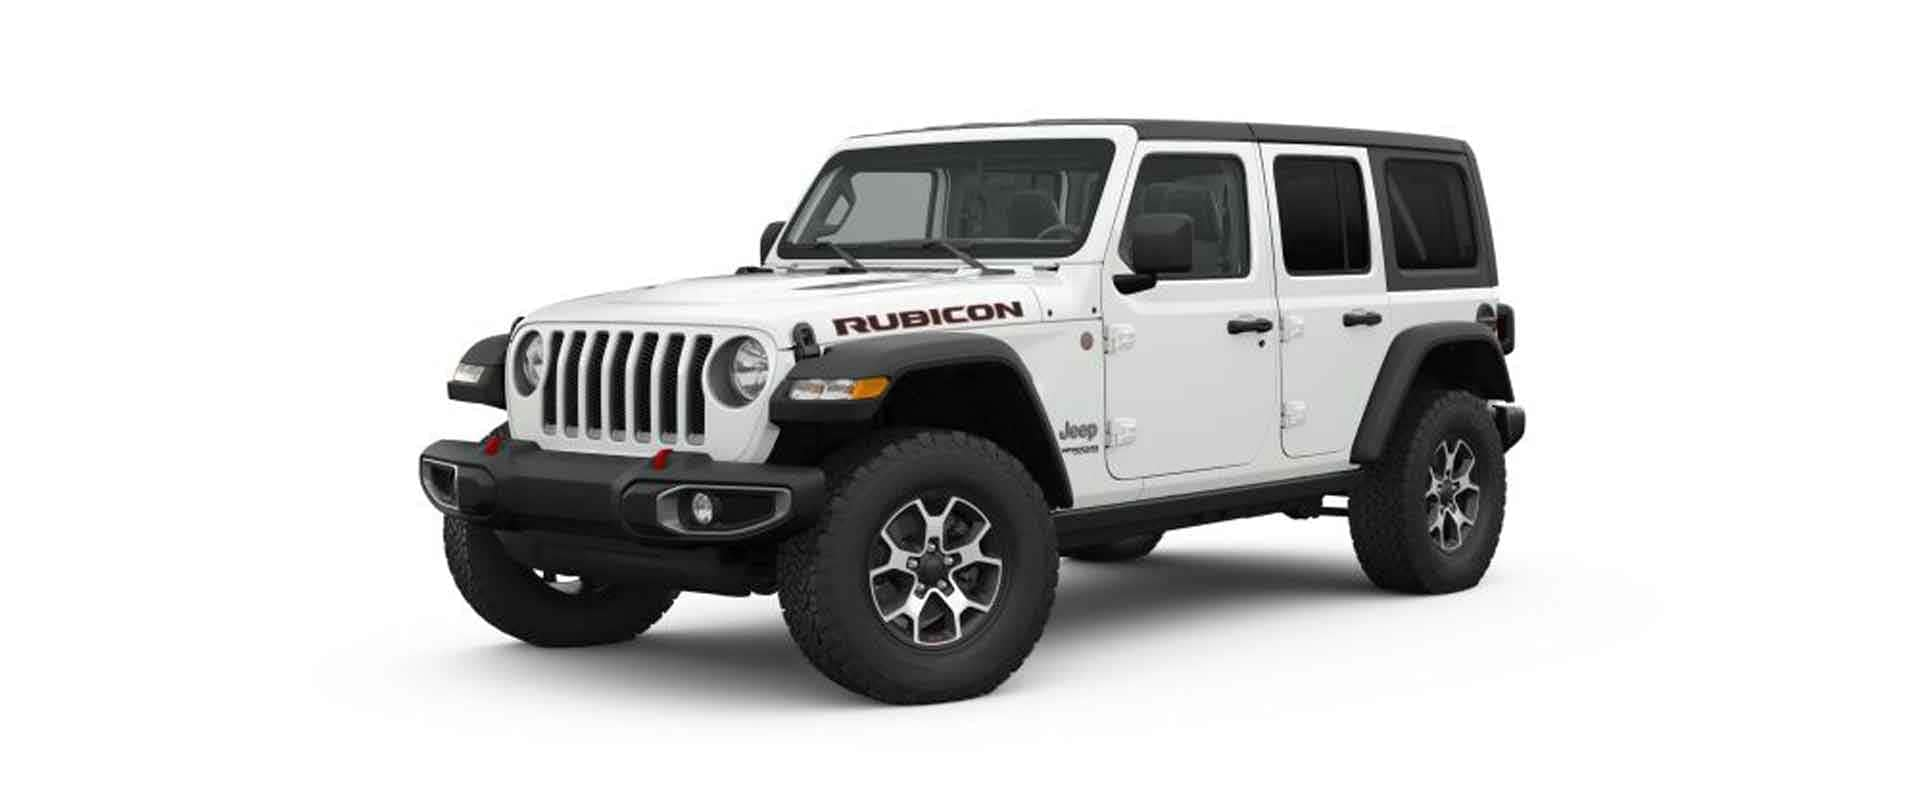 First Look Jeep Wrangler JL - Rubicon